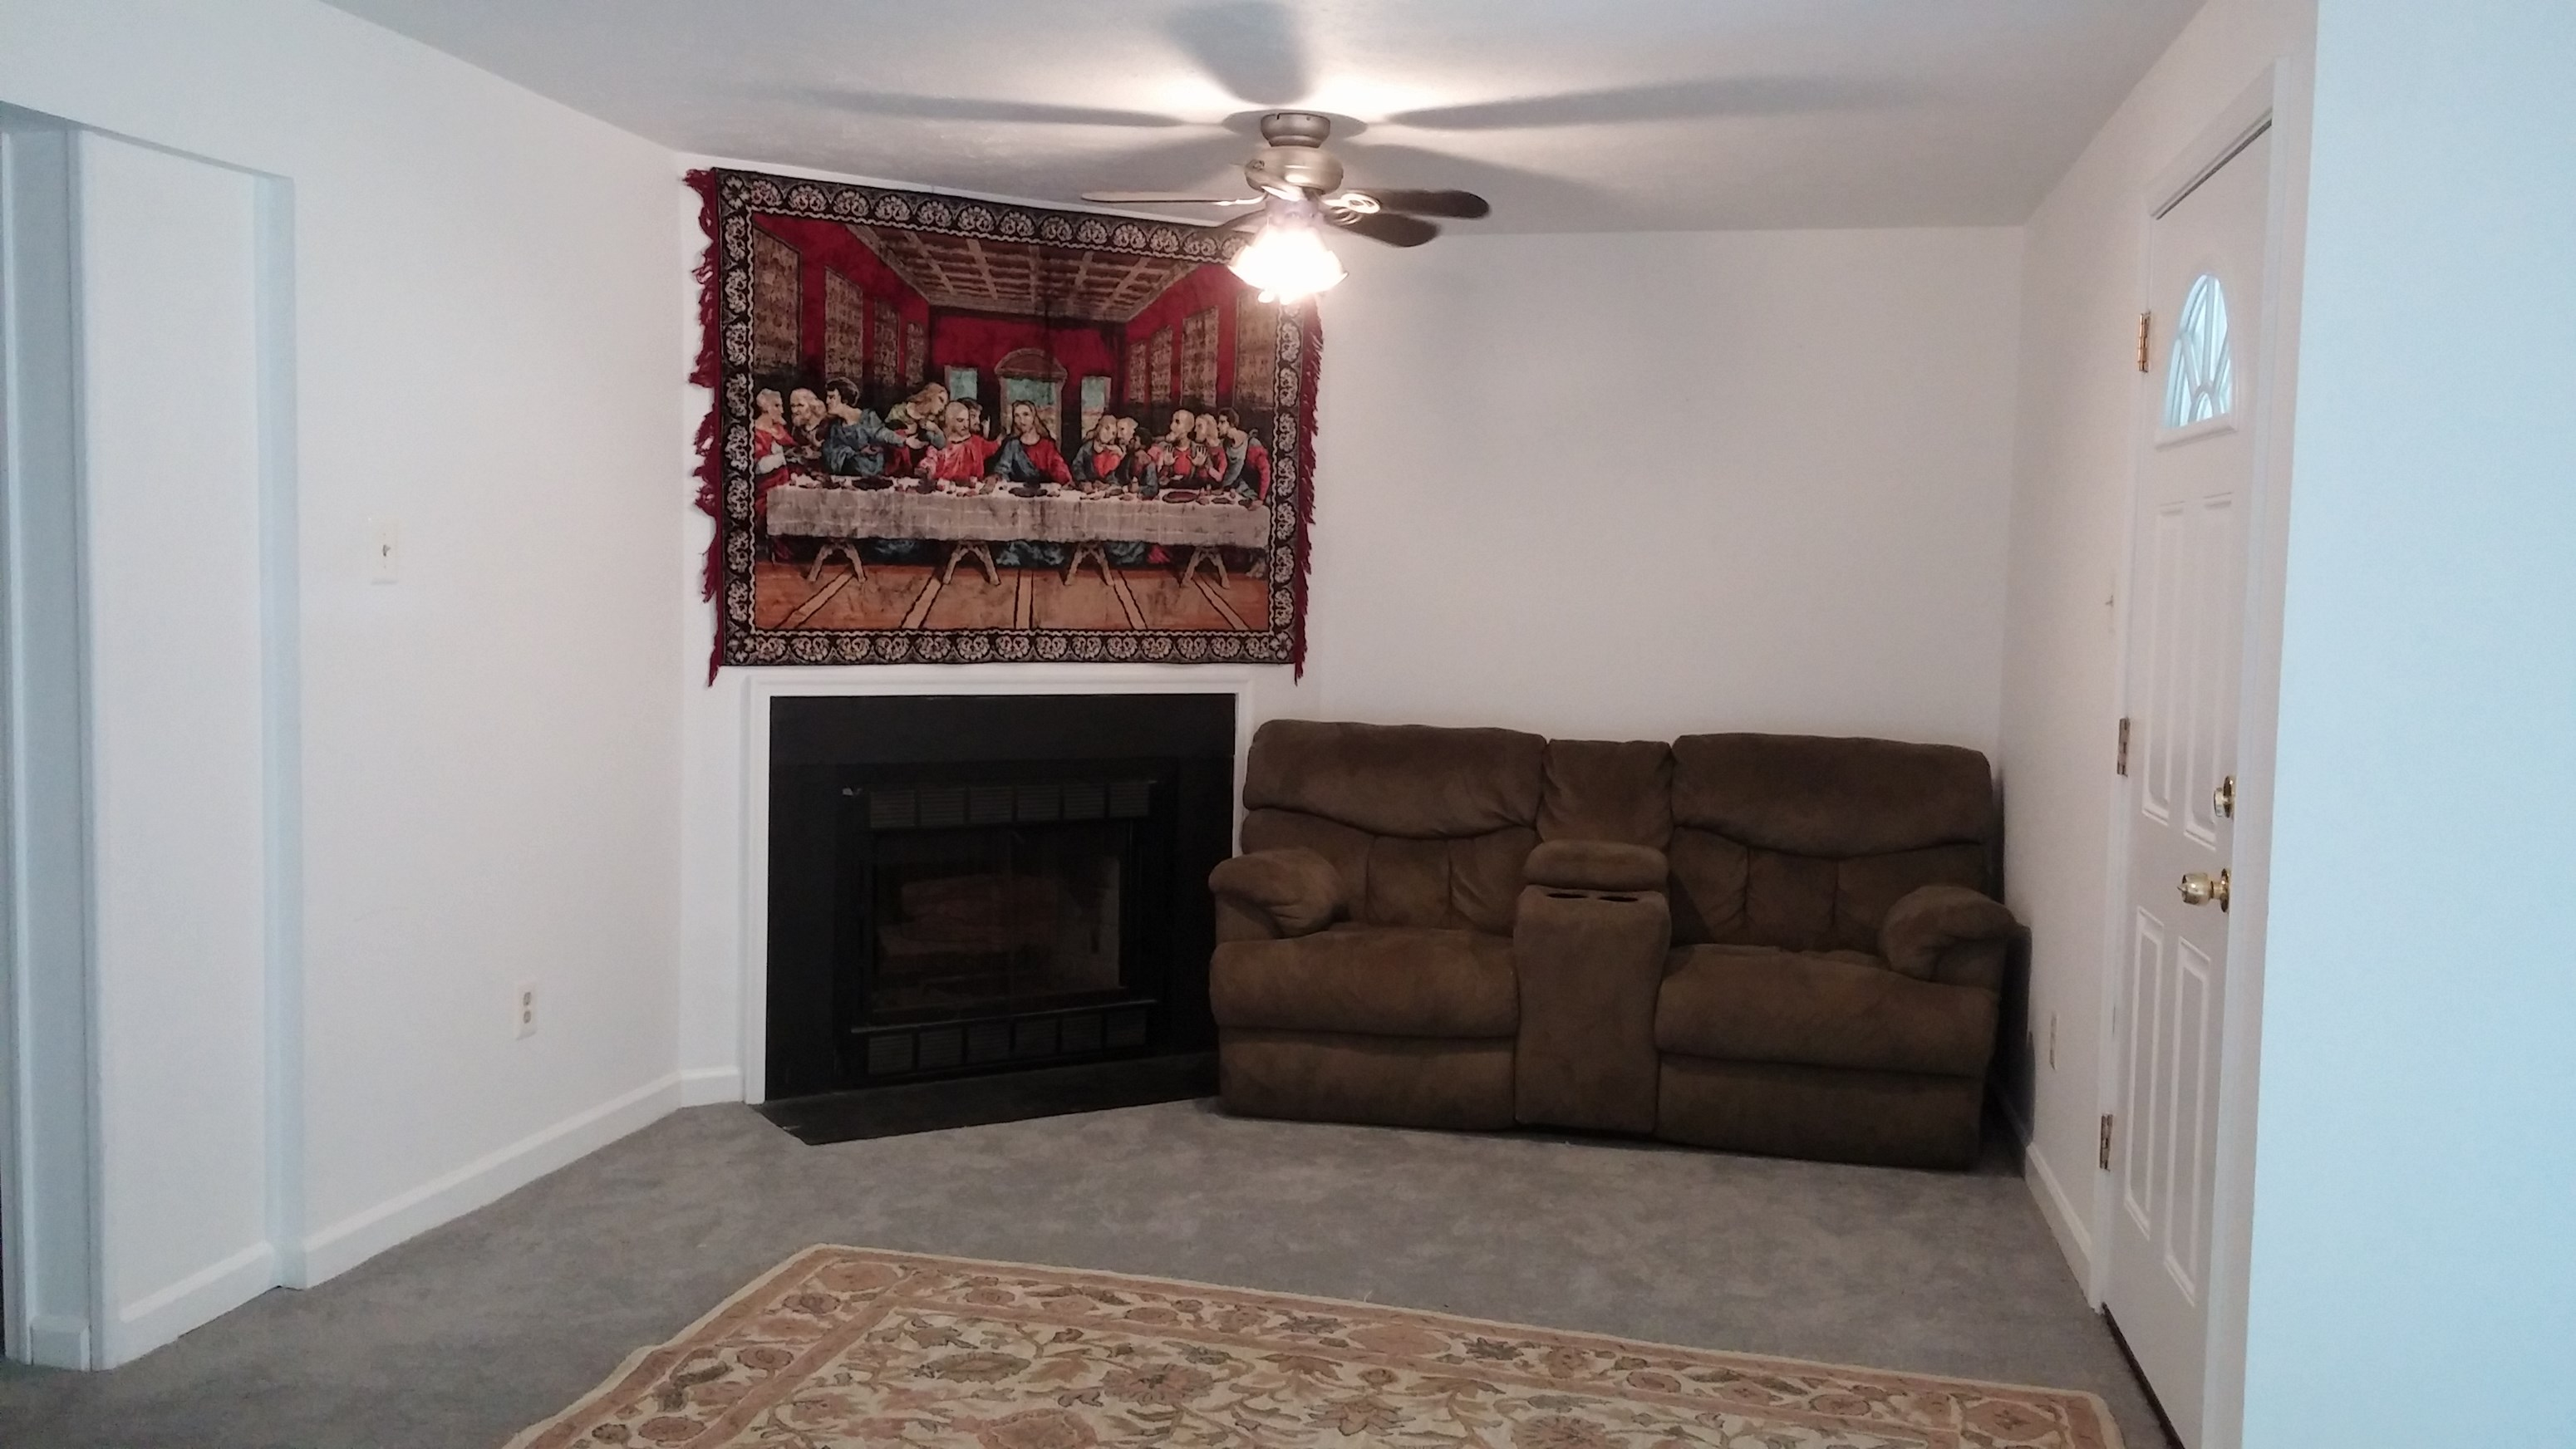 basement on rent 750 in woodbridge va 867440 sulekha roommates